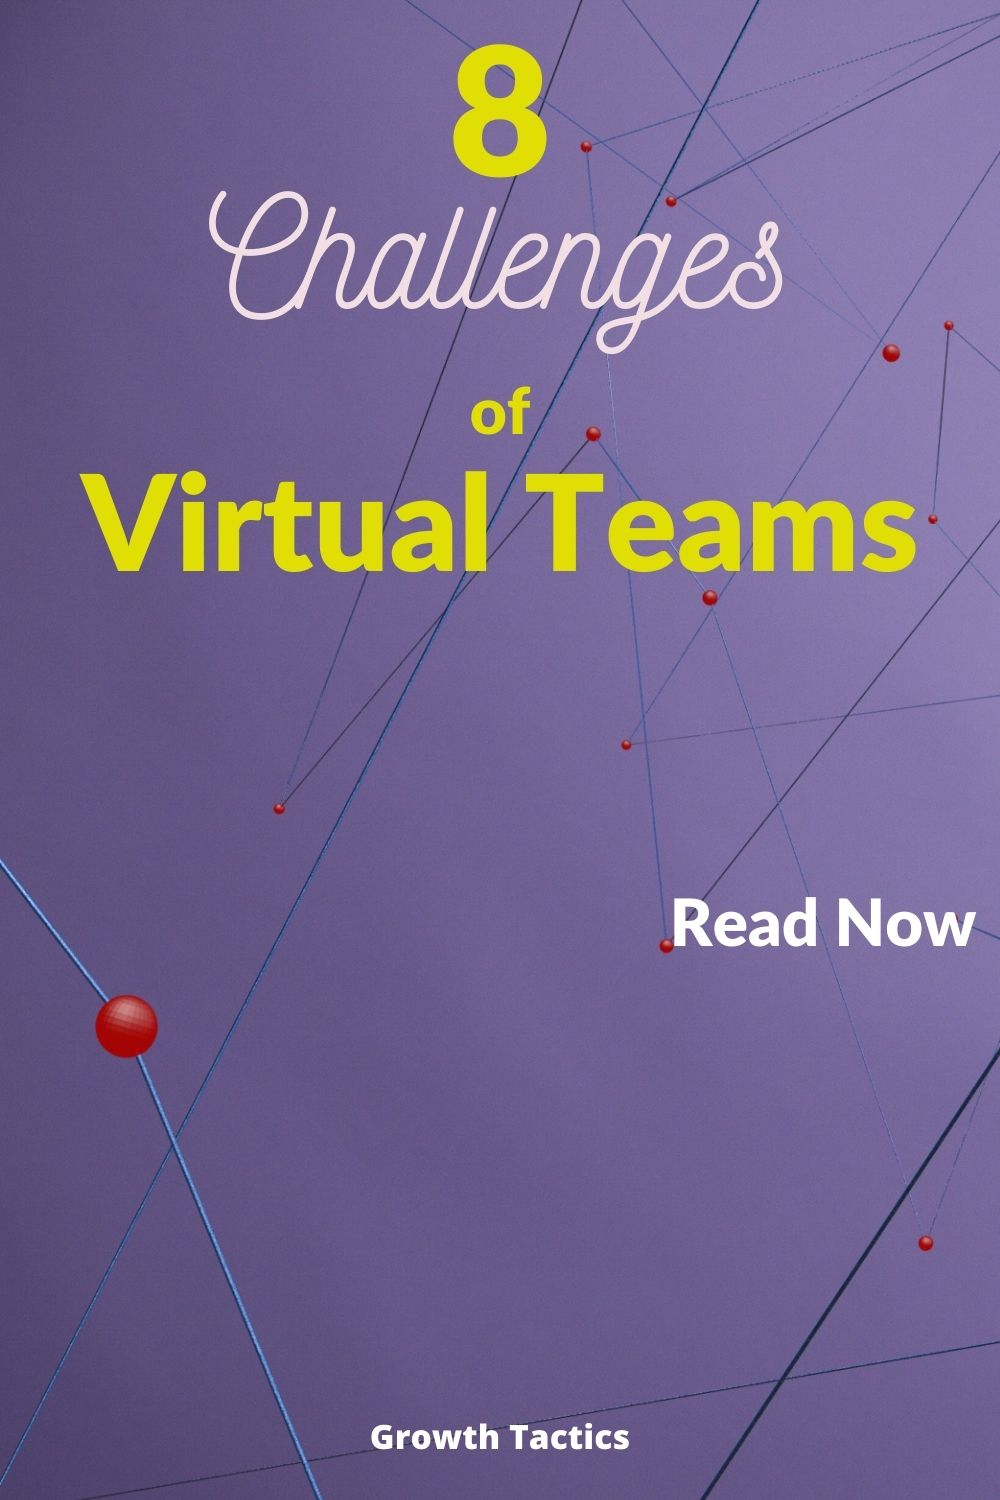 8 Challenges of Virtual Teams and How to Overcome Them